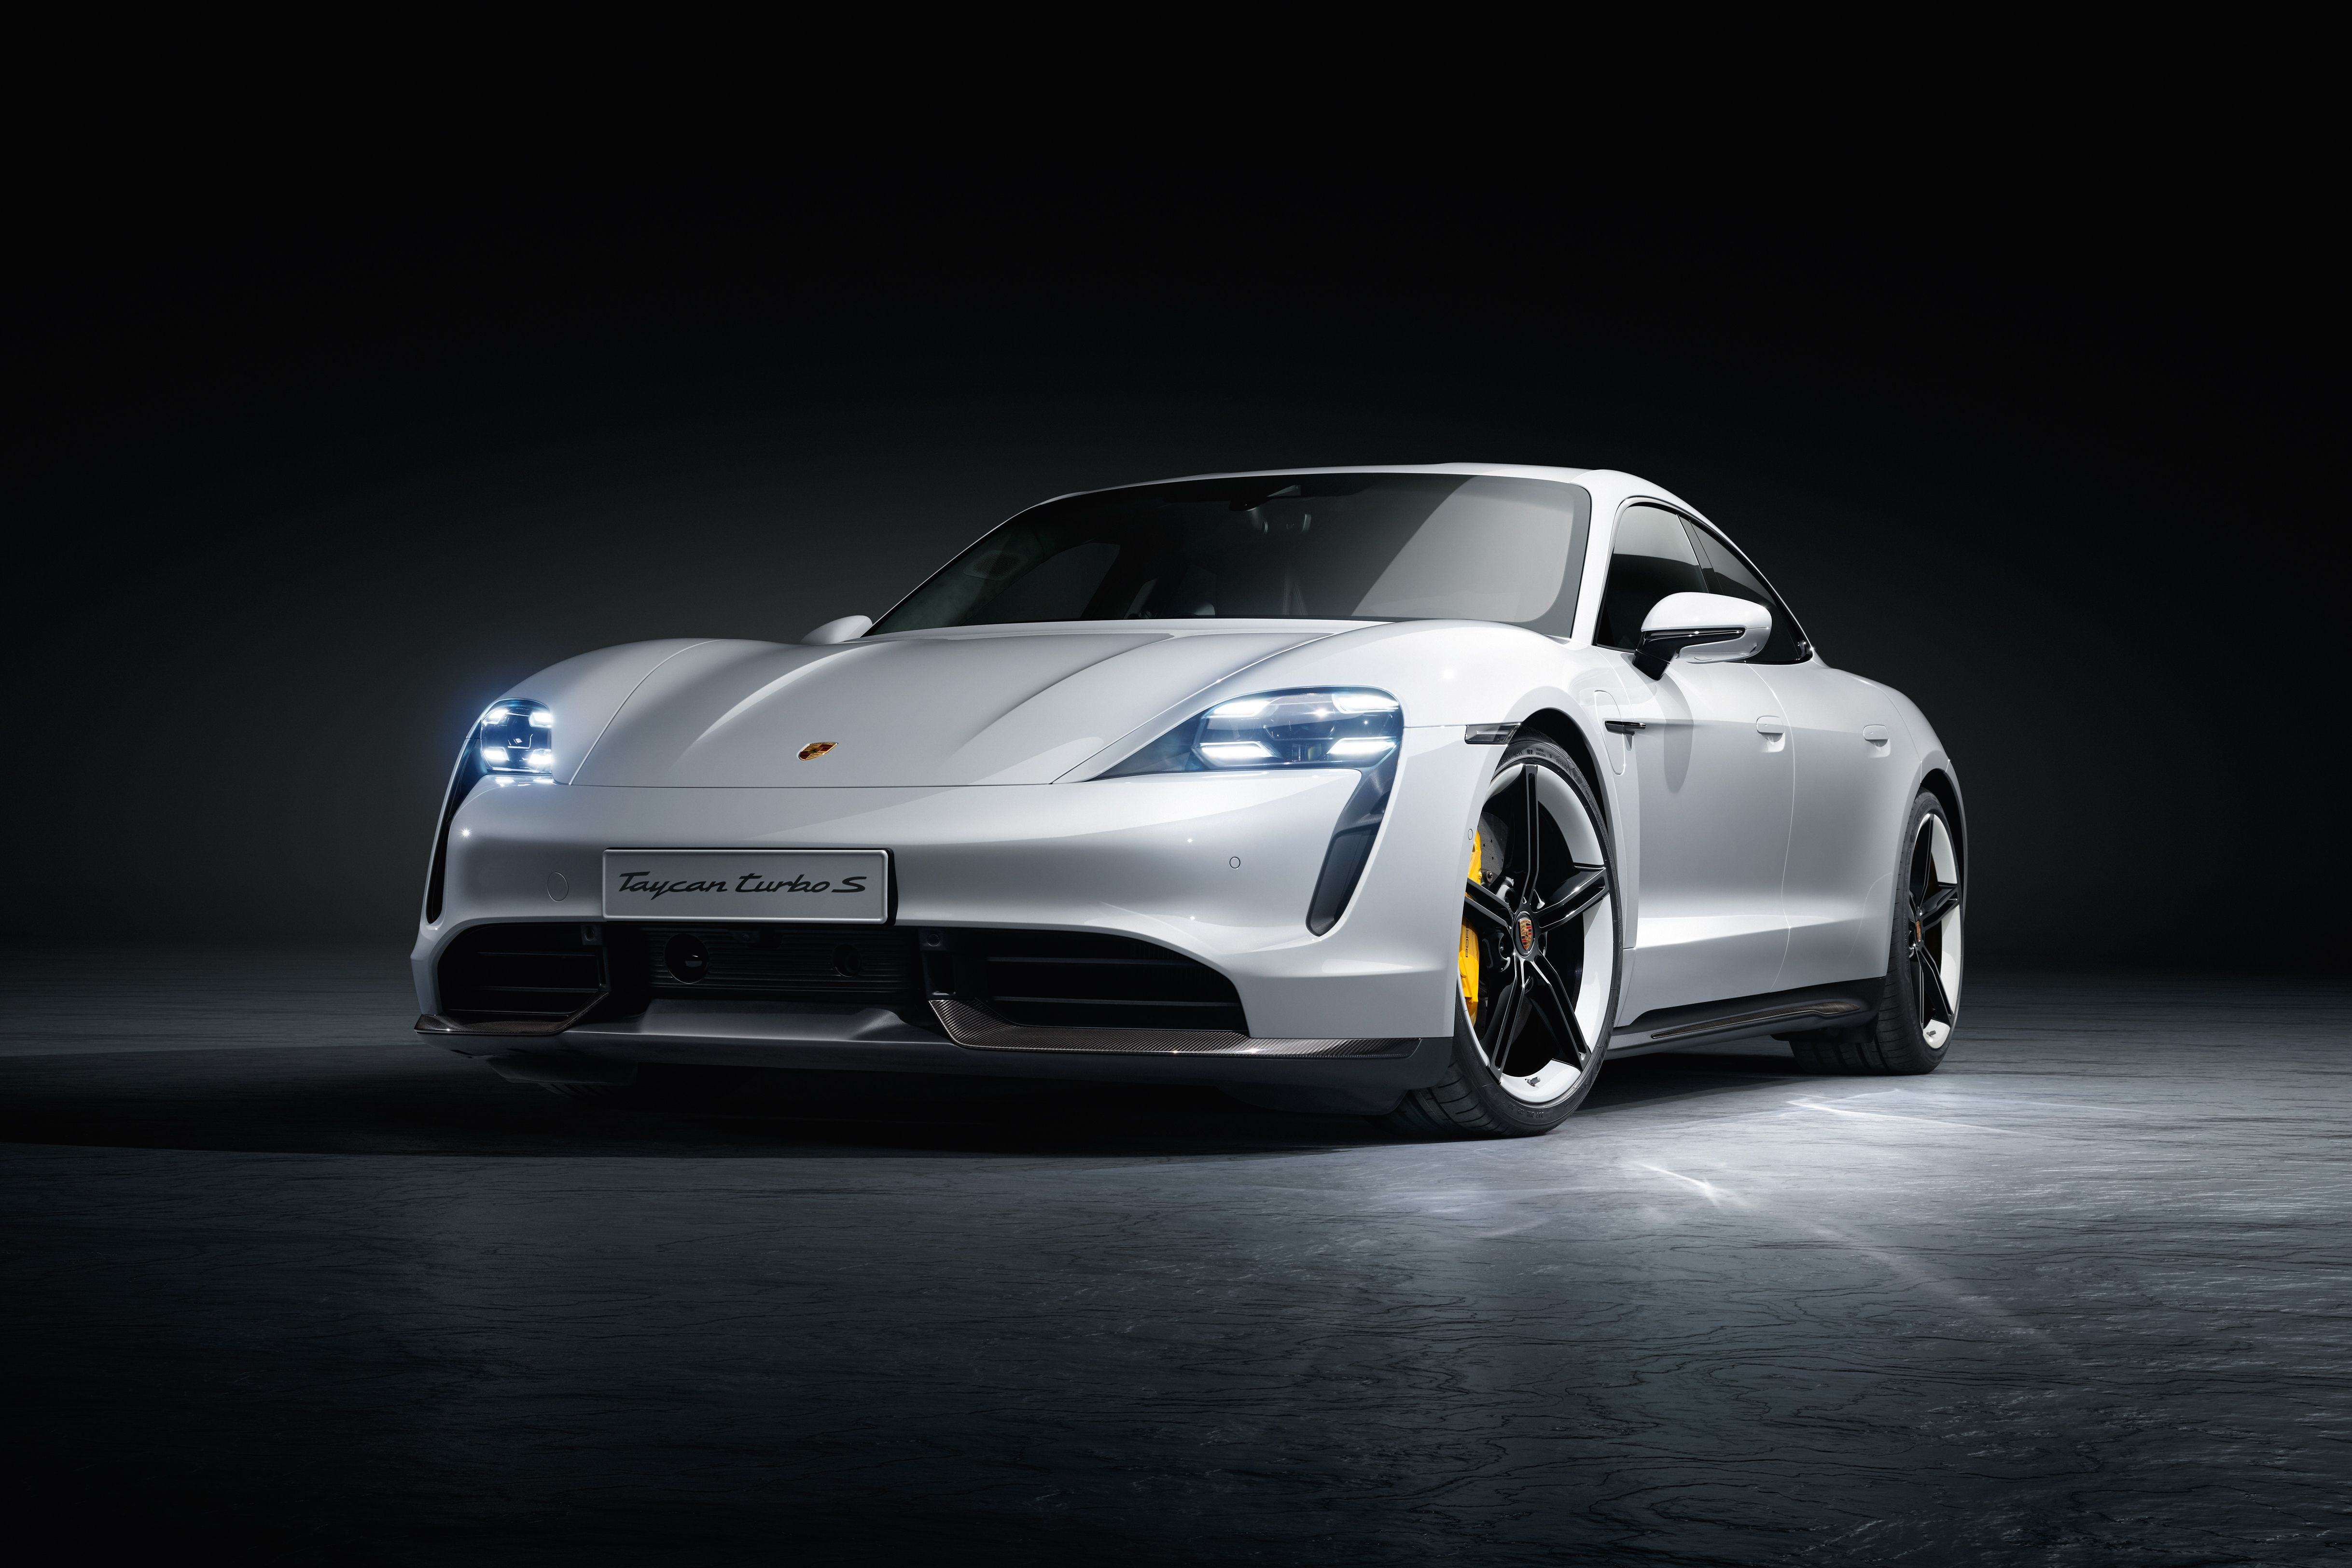 2020 Porsche Taycan Is a Lot More Expensive Than the Tesla